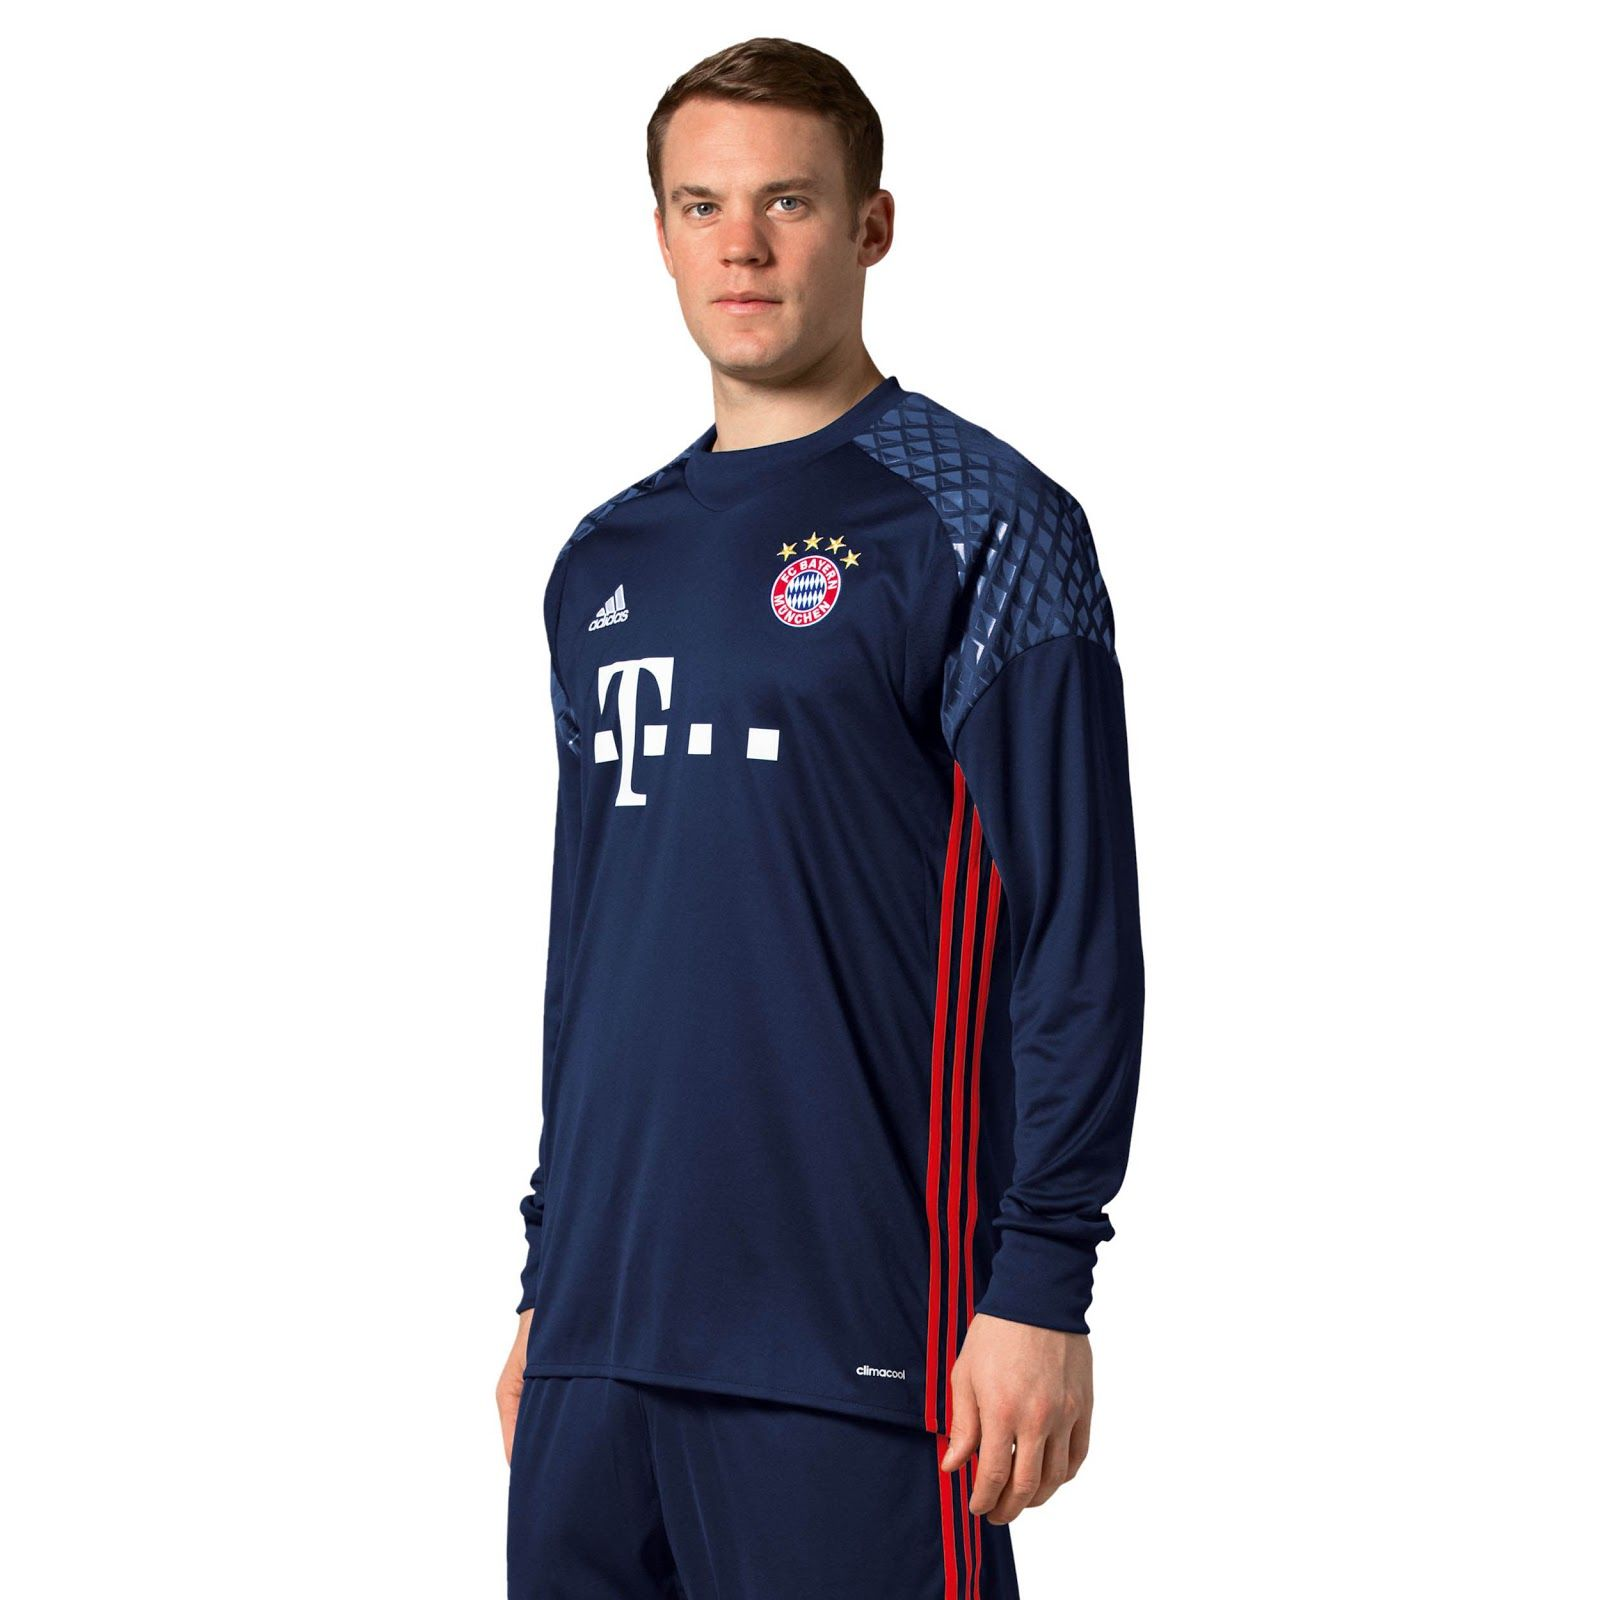 The new Bayern Munich 2016 2017 goalkeeper kit boasts an